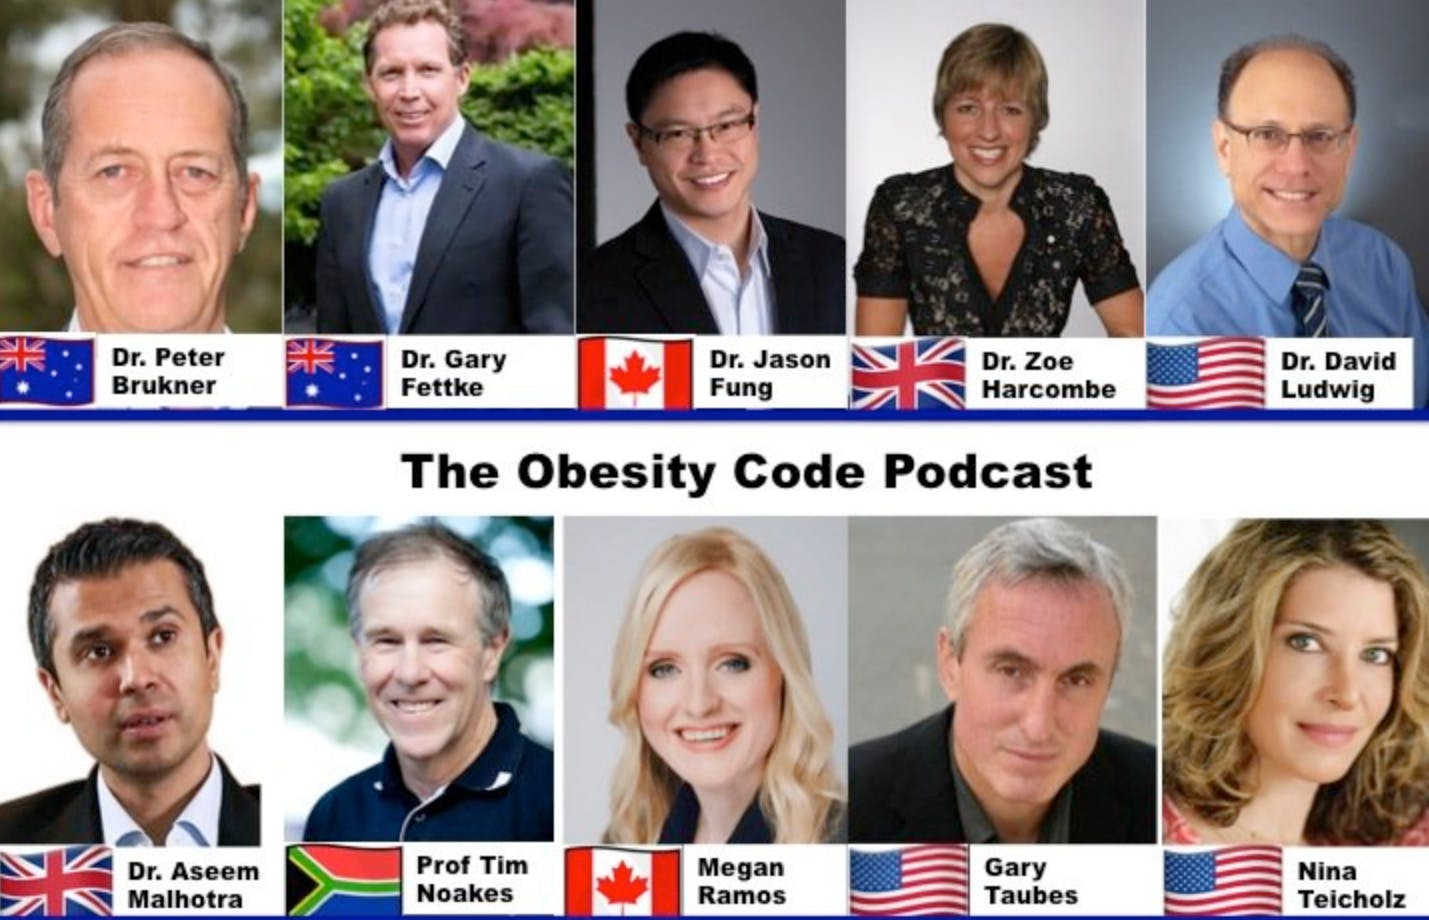 Brand new: Listen to the Obesity Code Podcast